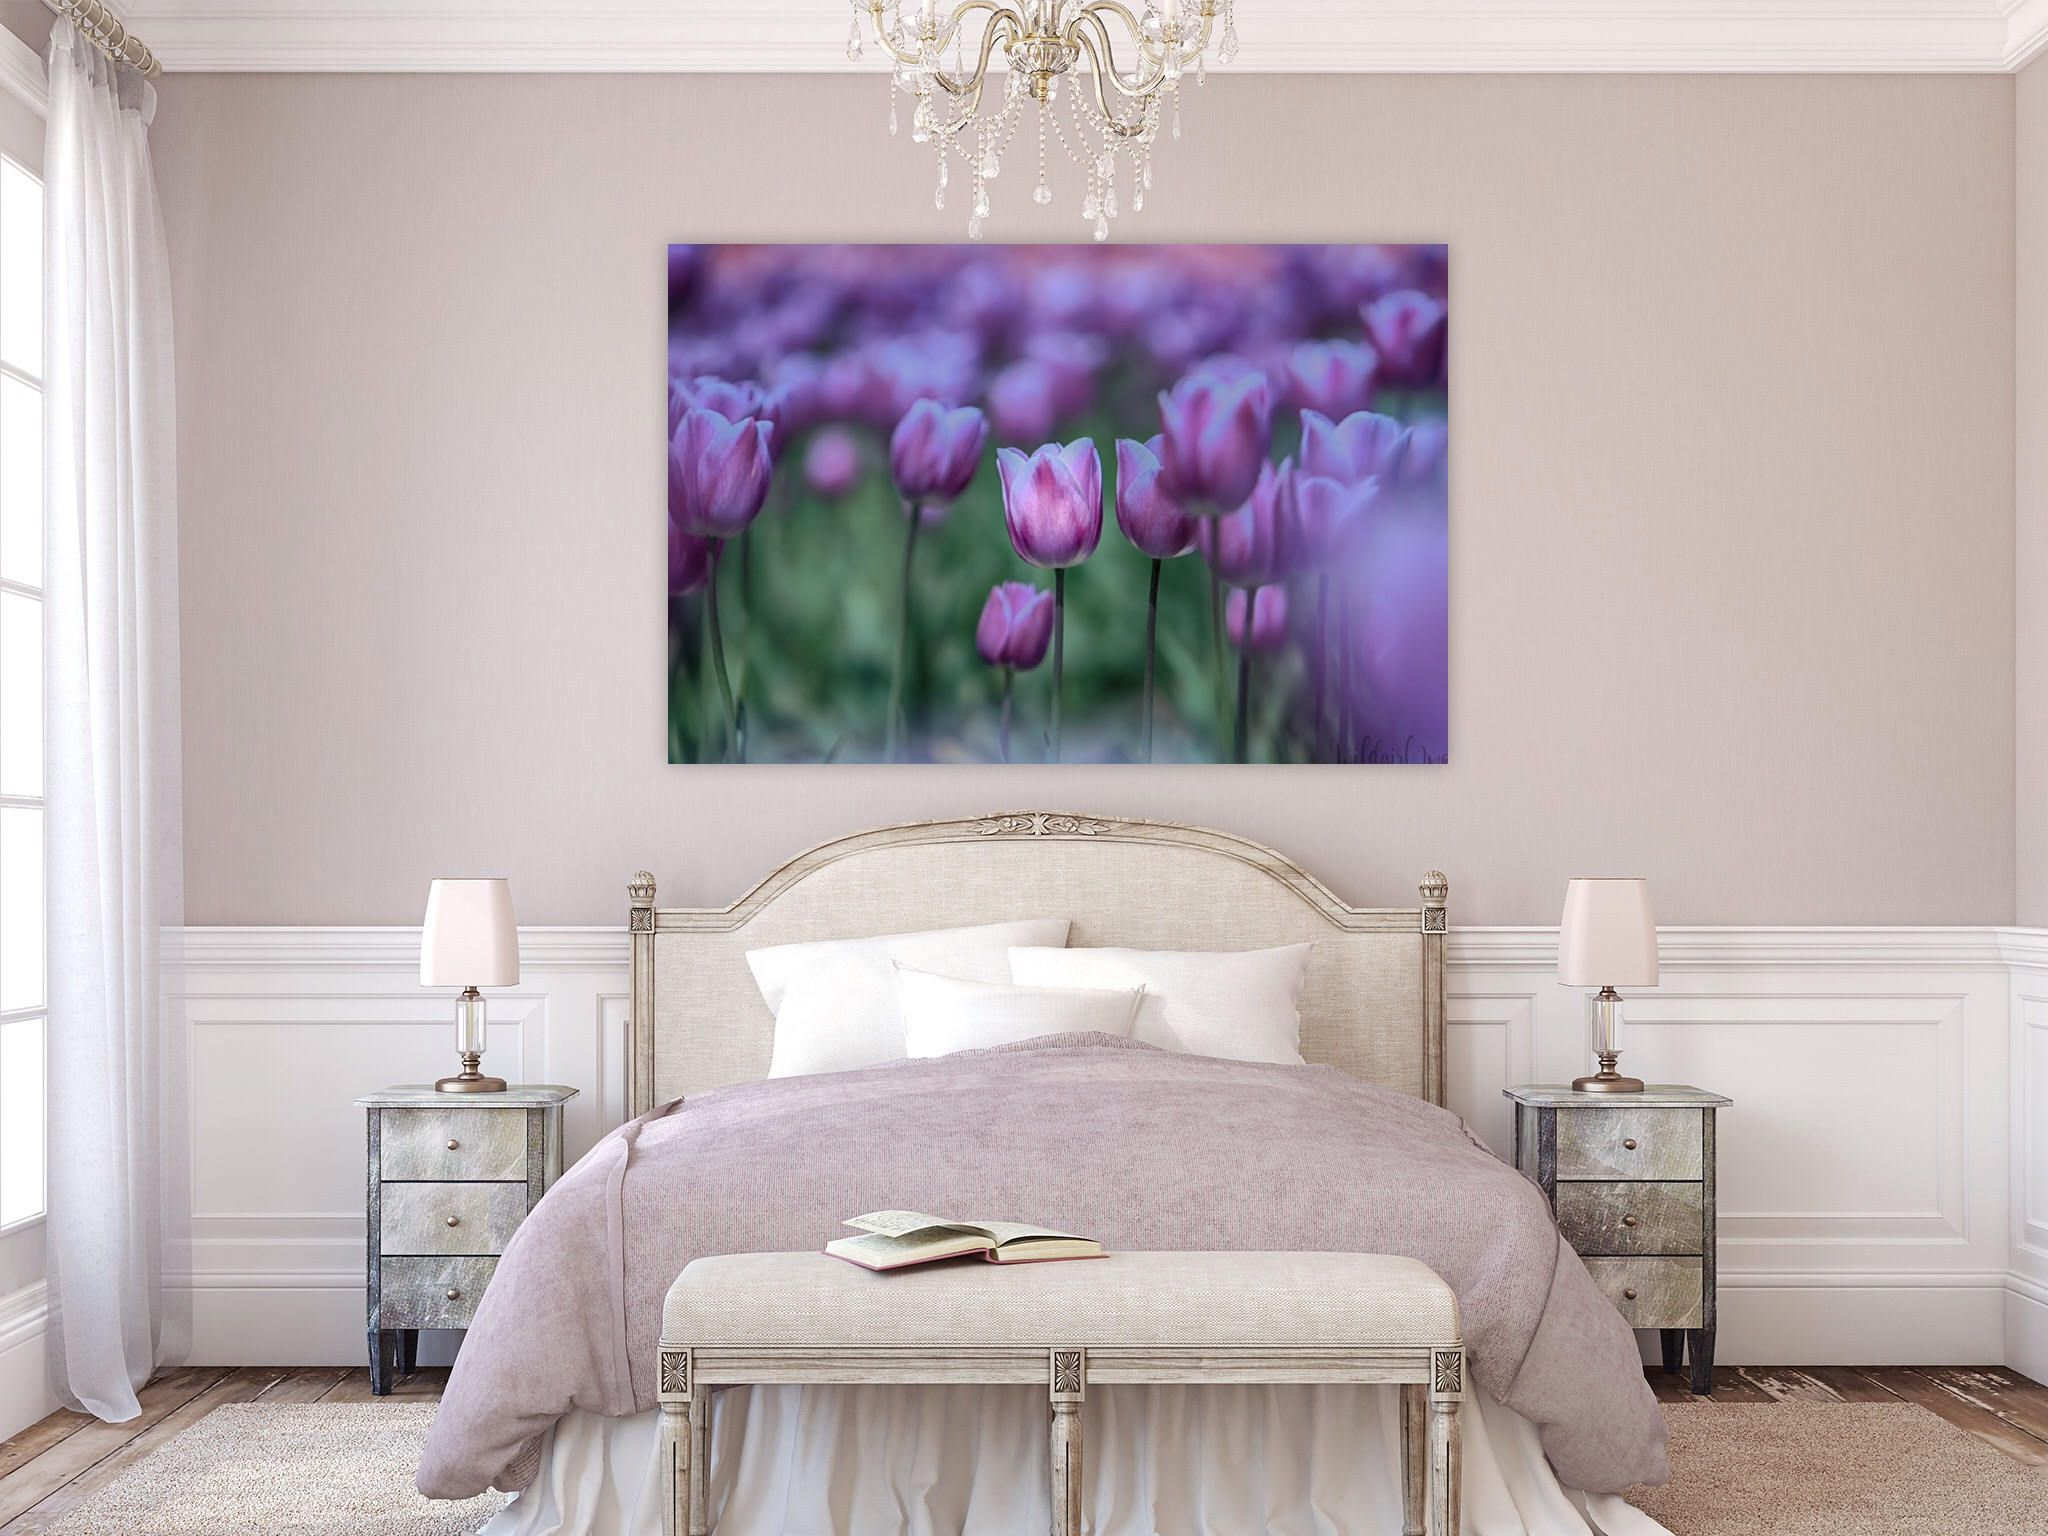 commercial art photography large wall art hotel dcor medical dcor office dcor commercial prints home dcor tulips purple flower - Violet Hotel Decor